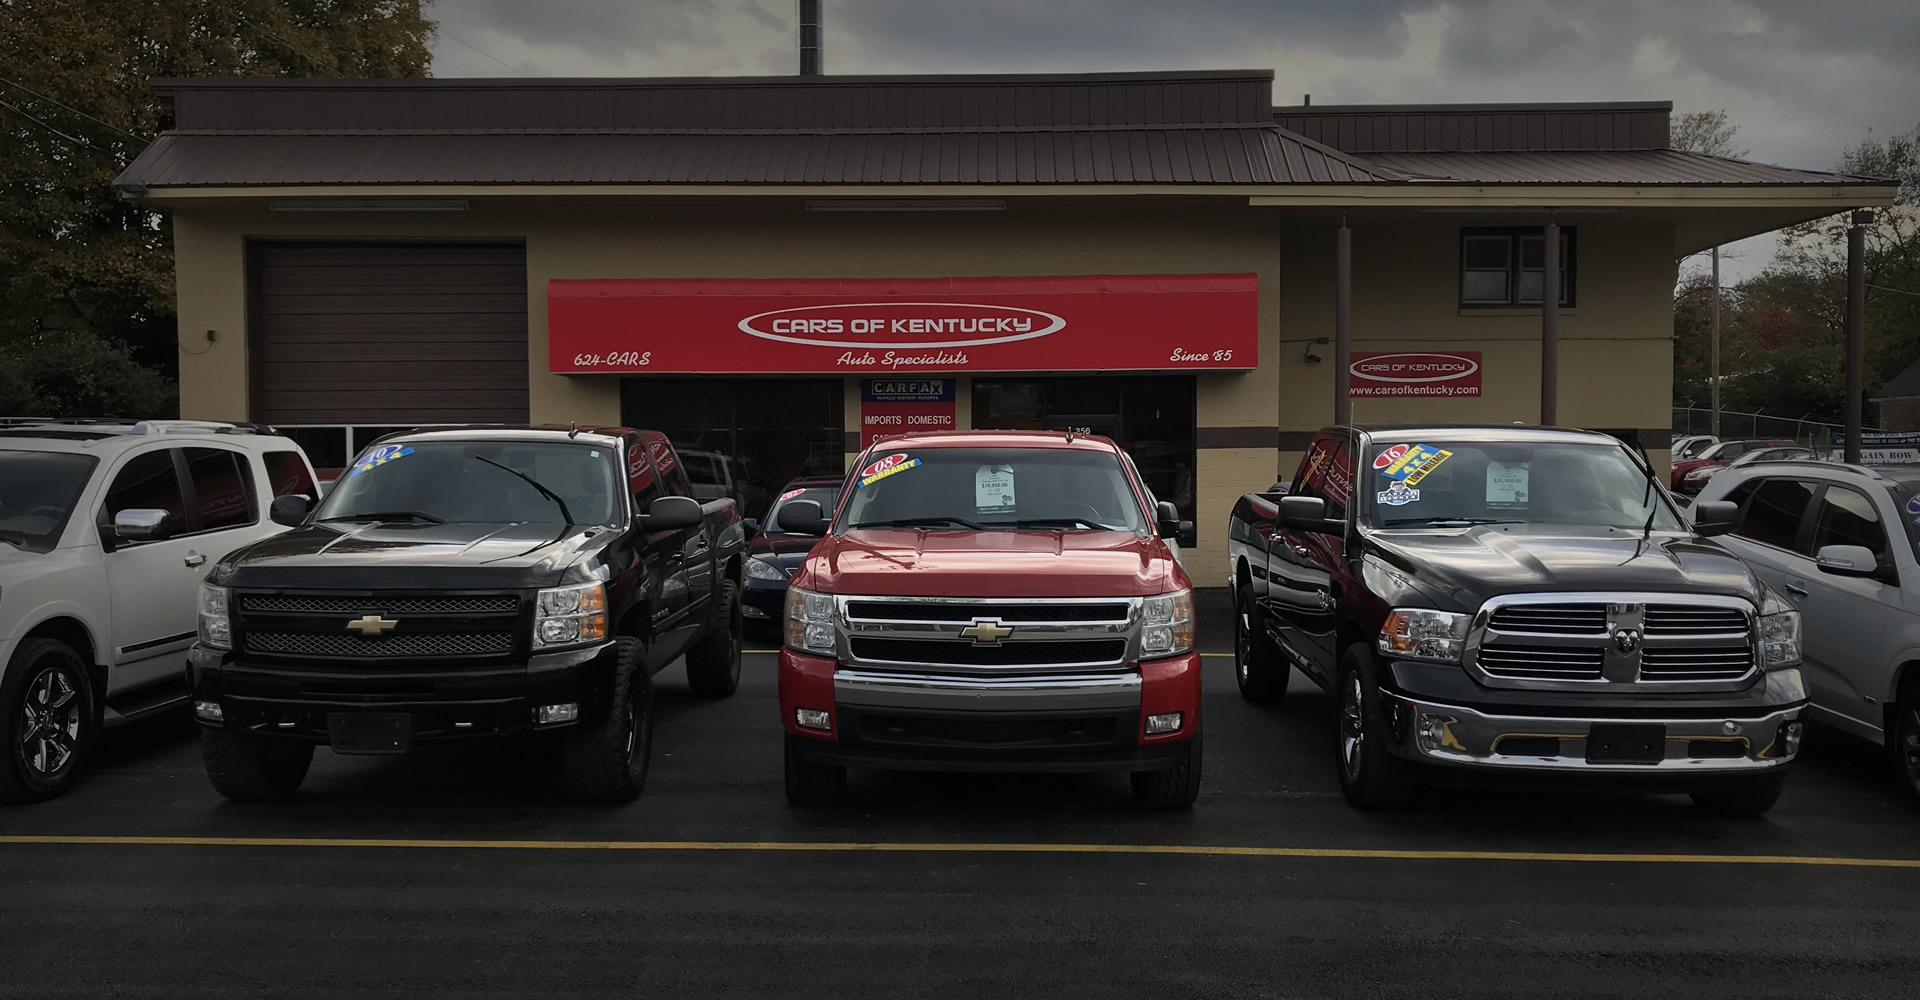 Toyota Richmond Indiana >> Used Cars Richmond Ky Used Cars Trucks Ky Cars Of Kentucky